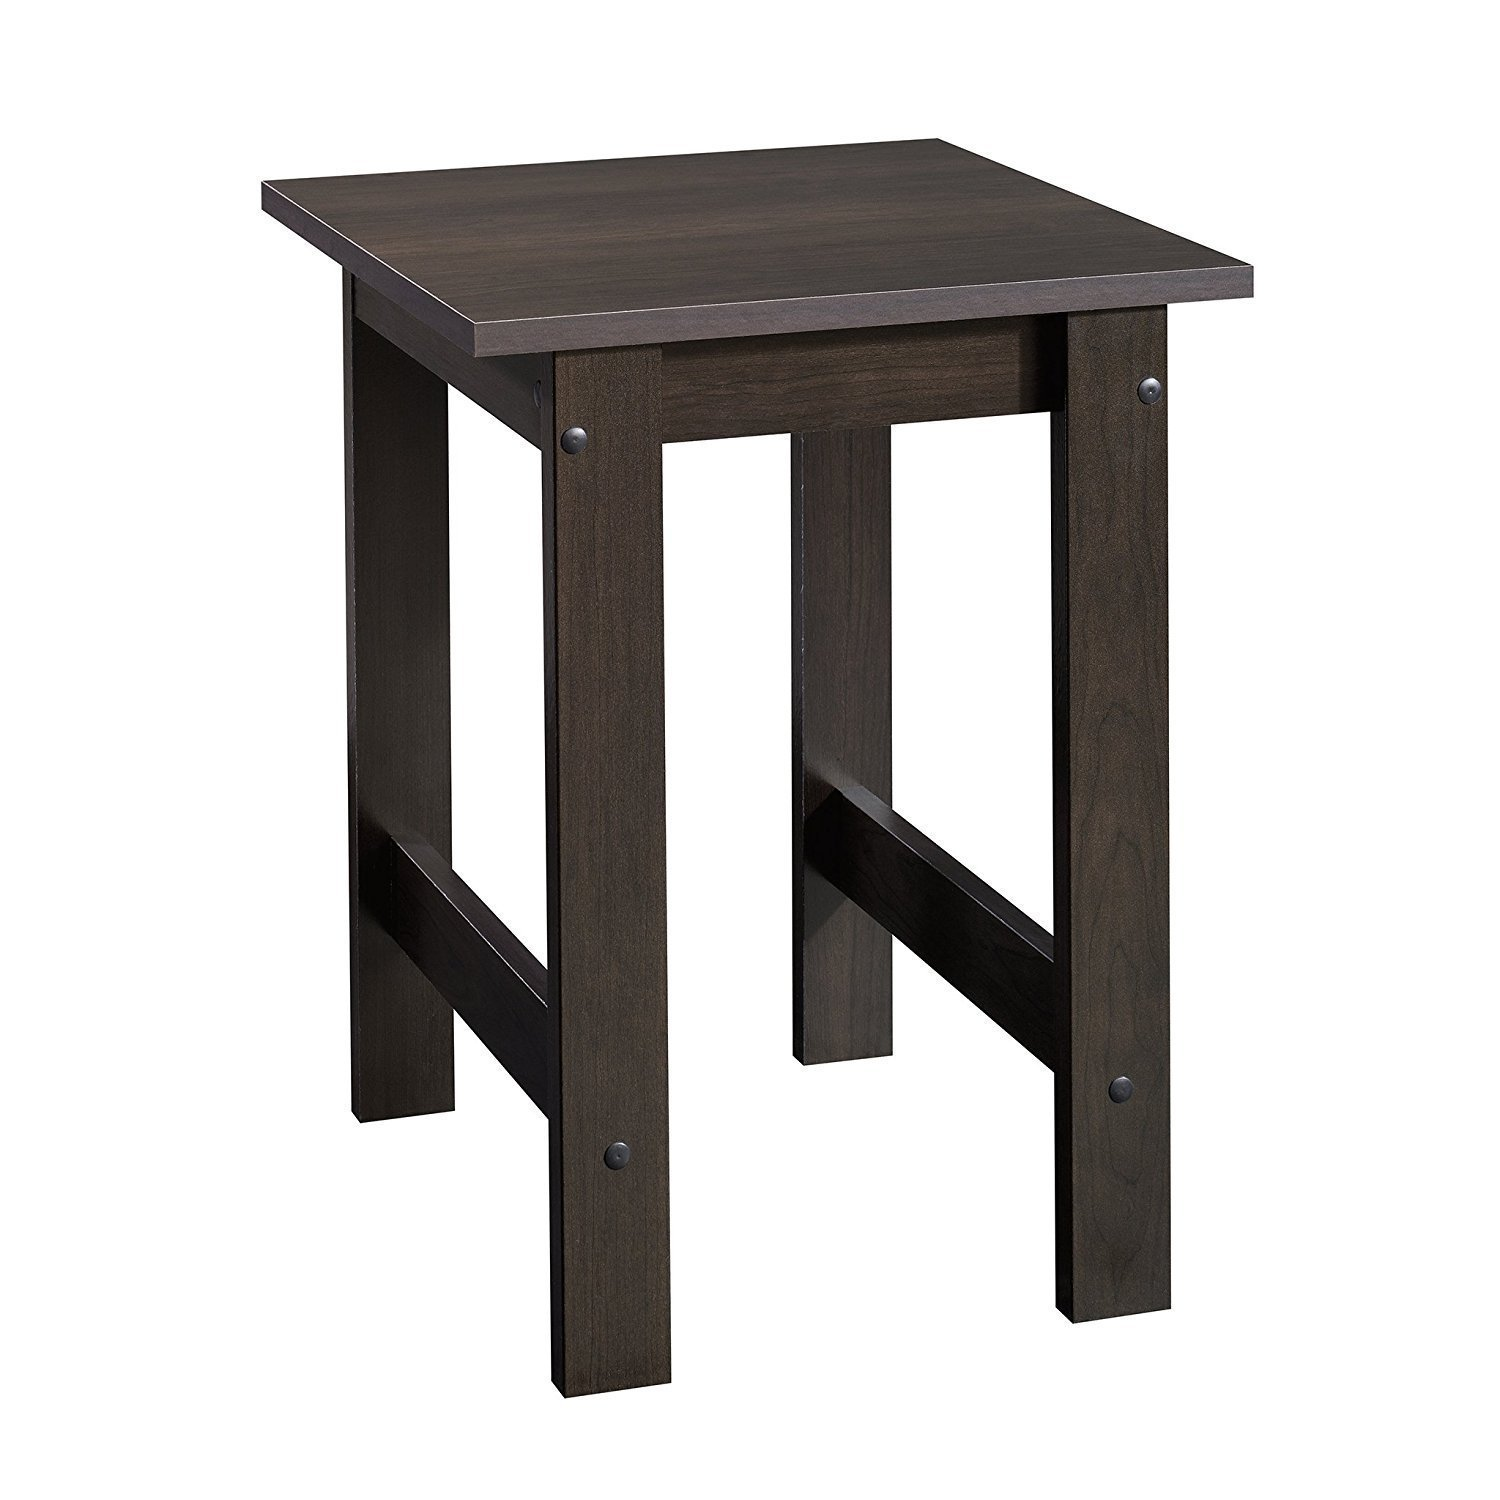 sauder beginnings end table kqoel cinnamon cherry finish kitchen dining oak log furniture glass tops thomasville nightstand wood projects black pipe workbench wooden crate for dog